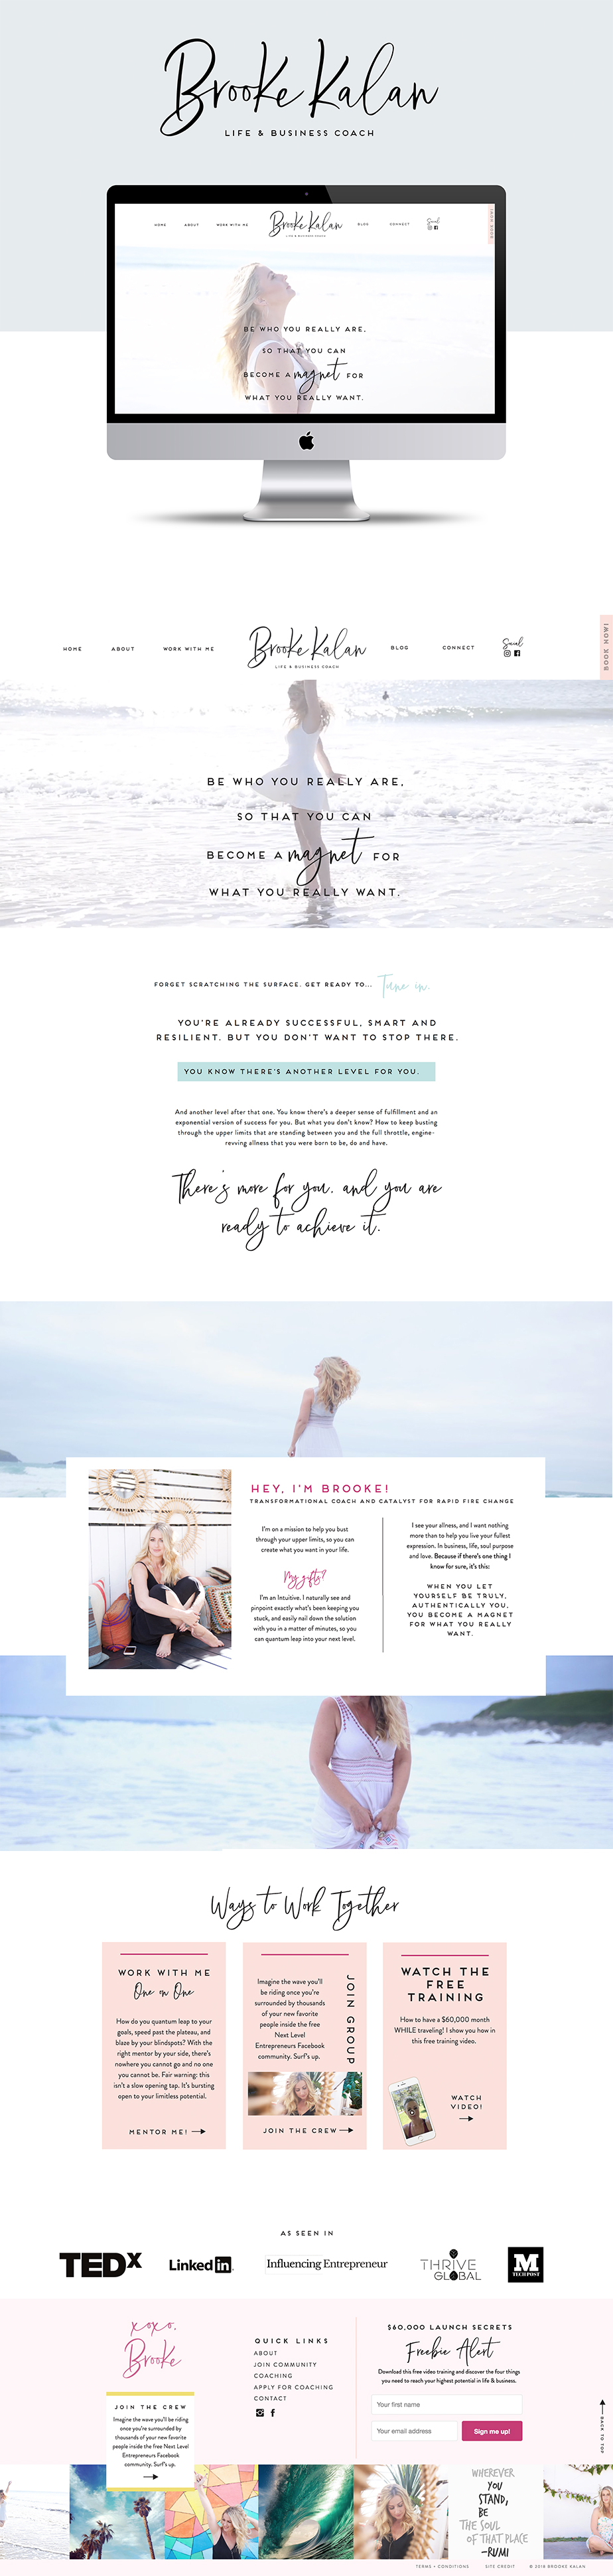 Brooke Kalan - Life and Business Coach Branding and Website Design